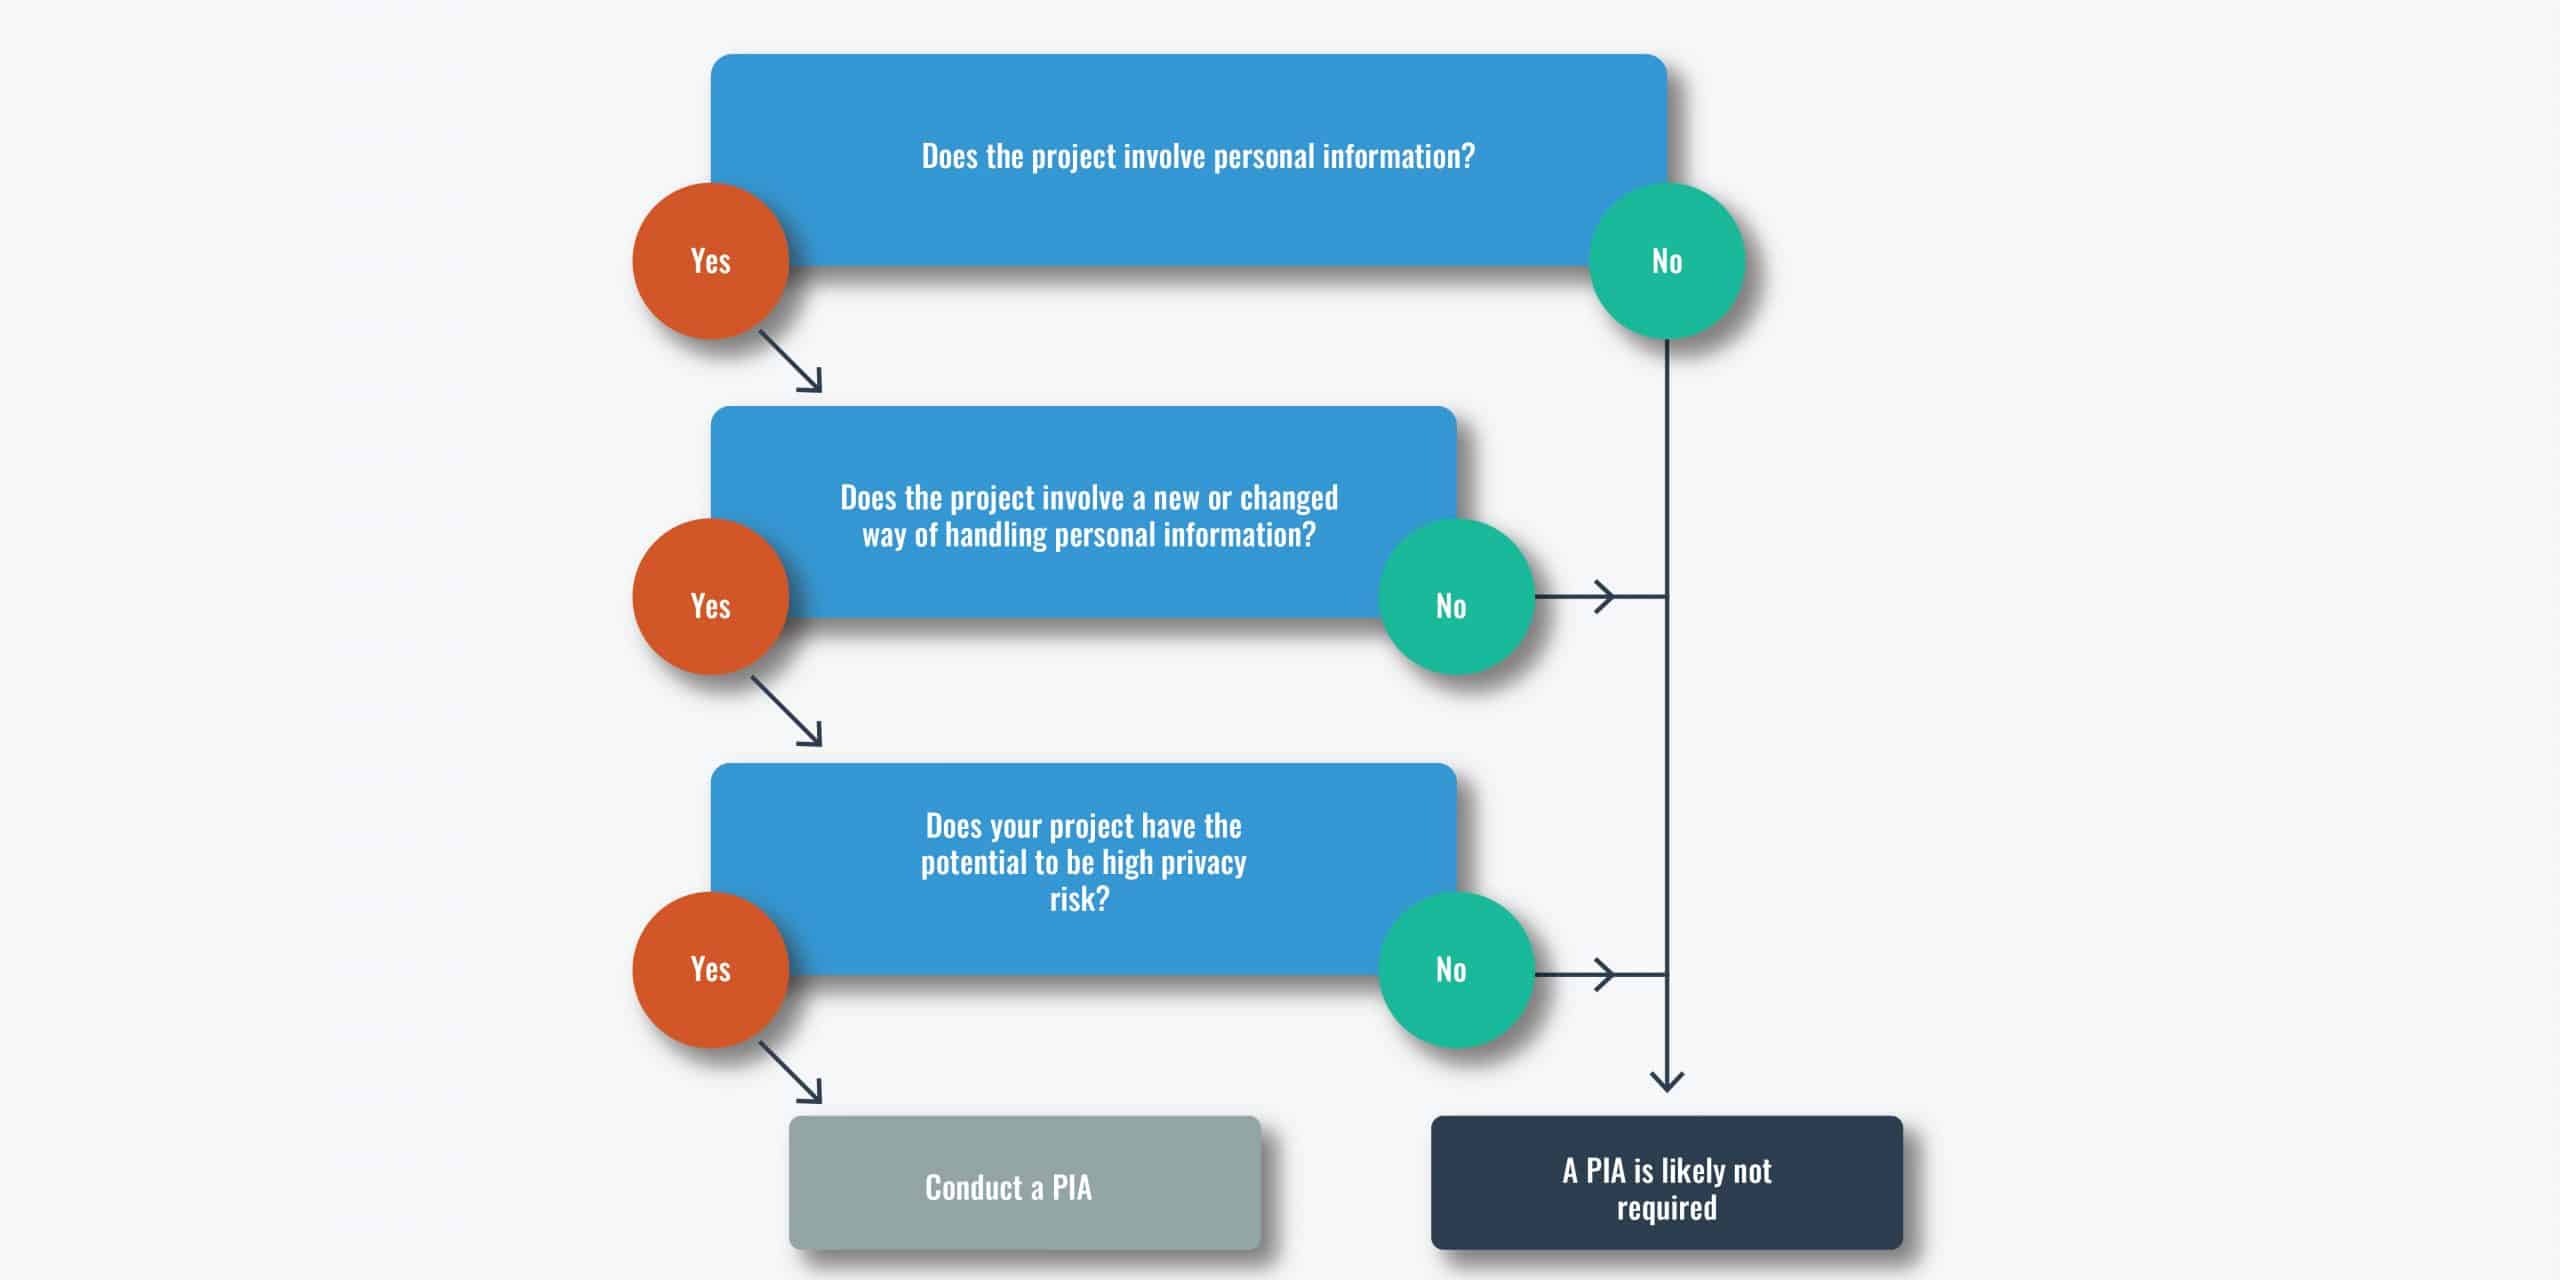 Flowchart to determine when to undertake a PIA